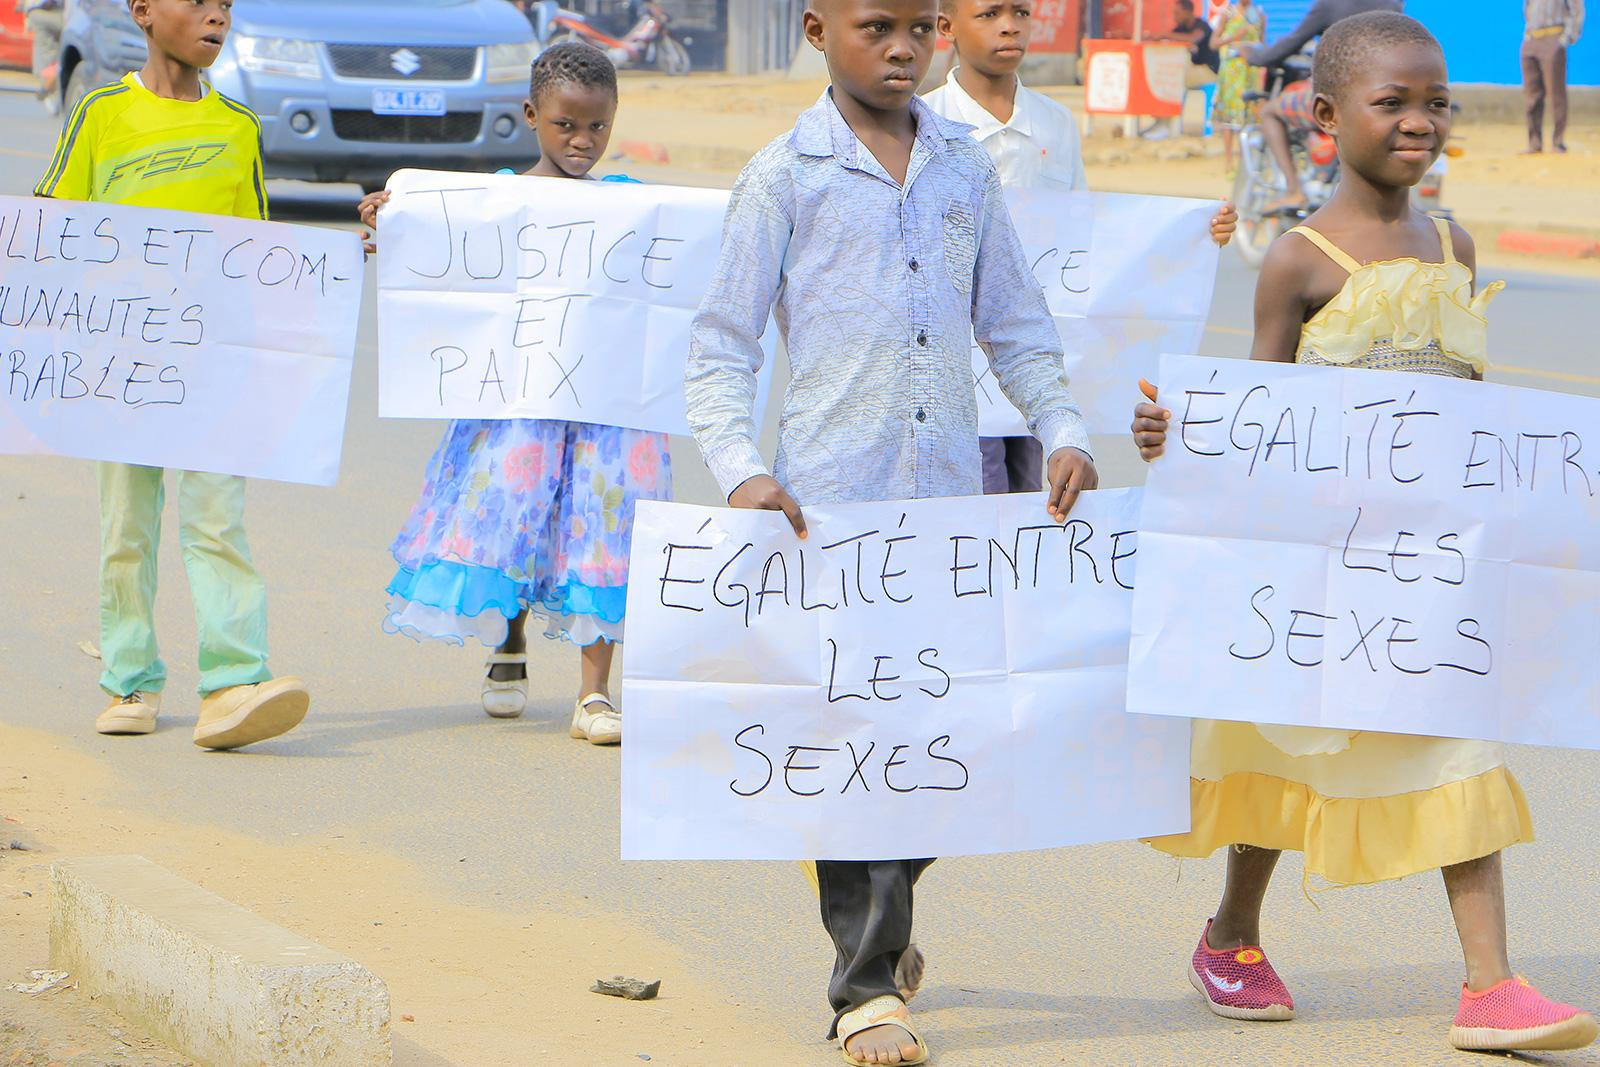 Kids walking with signs.